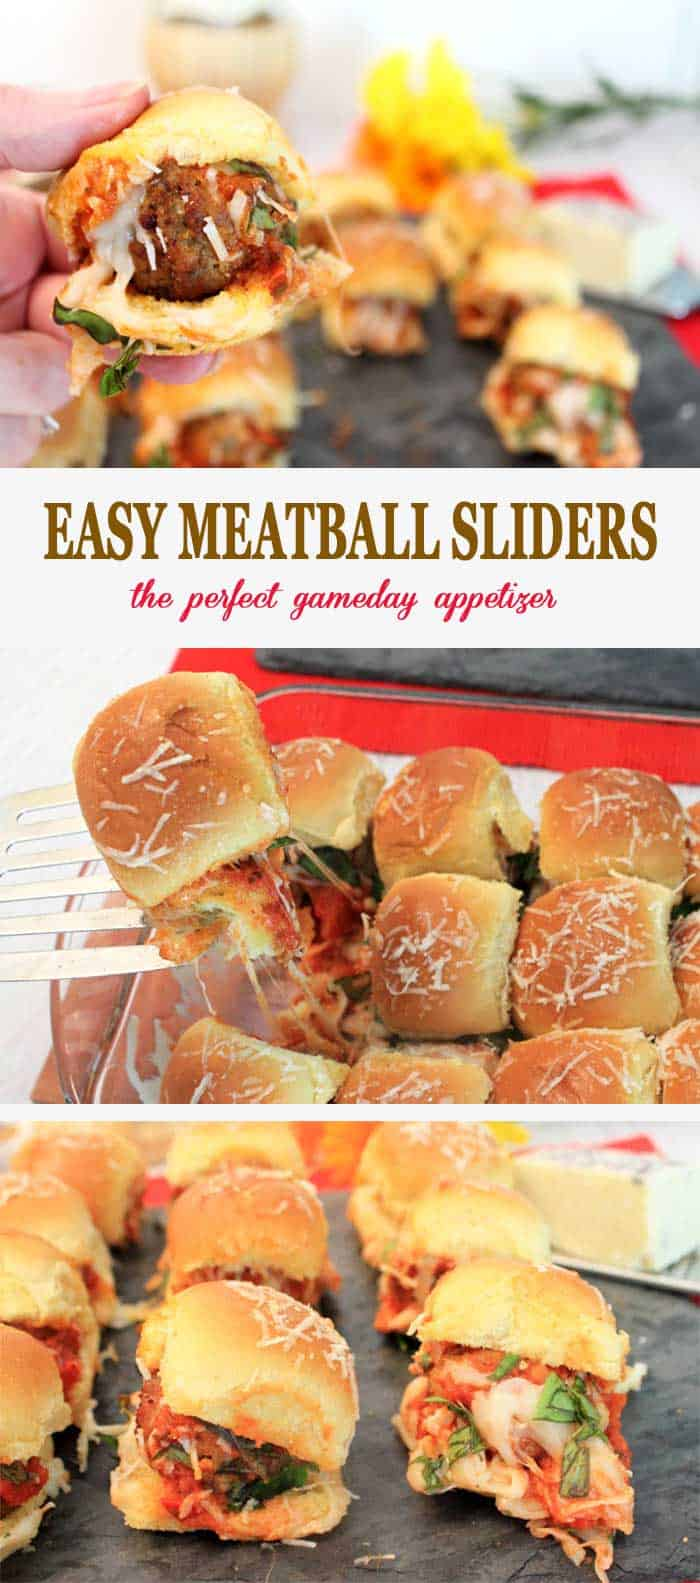 Meatball Sliders pin | 2 Cookin Mamas Easy Meatball Sliders, meatballs, smothered in sauce and cheese, and sandwiched in the perfect sized bun, are the perfect gameday appetizer or quick meal. Easy to make, starting with prepackaged ingredients, these beauties can be on your table in less than 15 minutes! #gameday #appetizer #sliders #recipe #meatballs #easyrecipe #quickandeasy